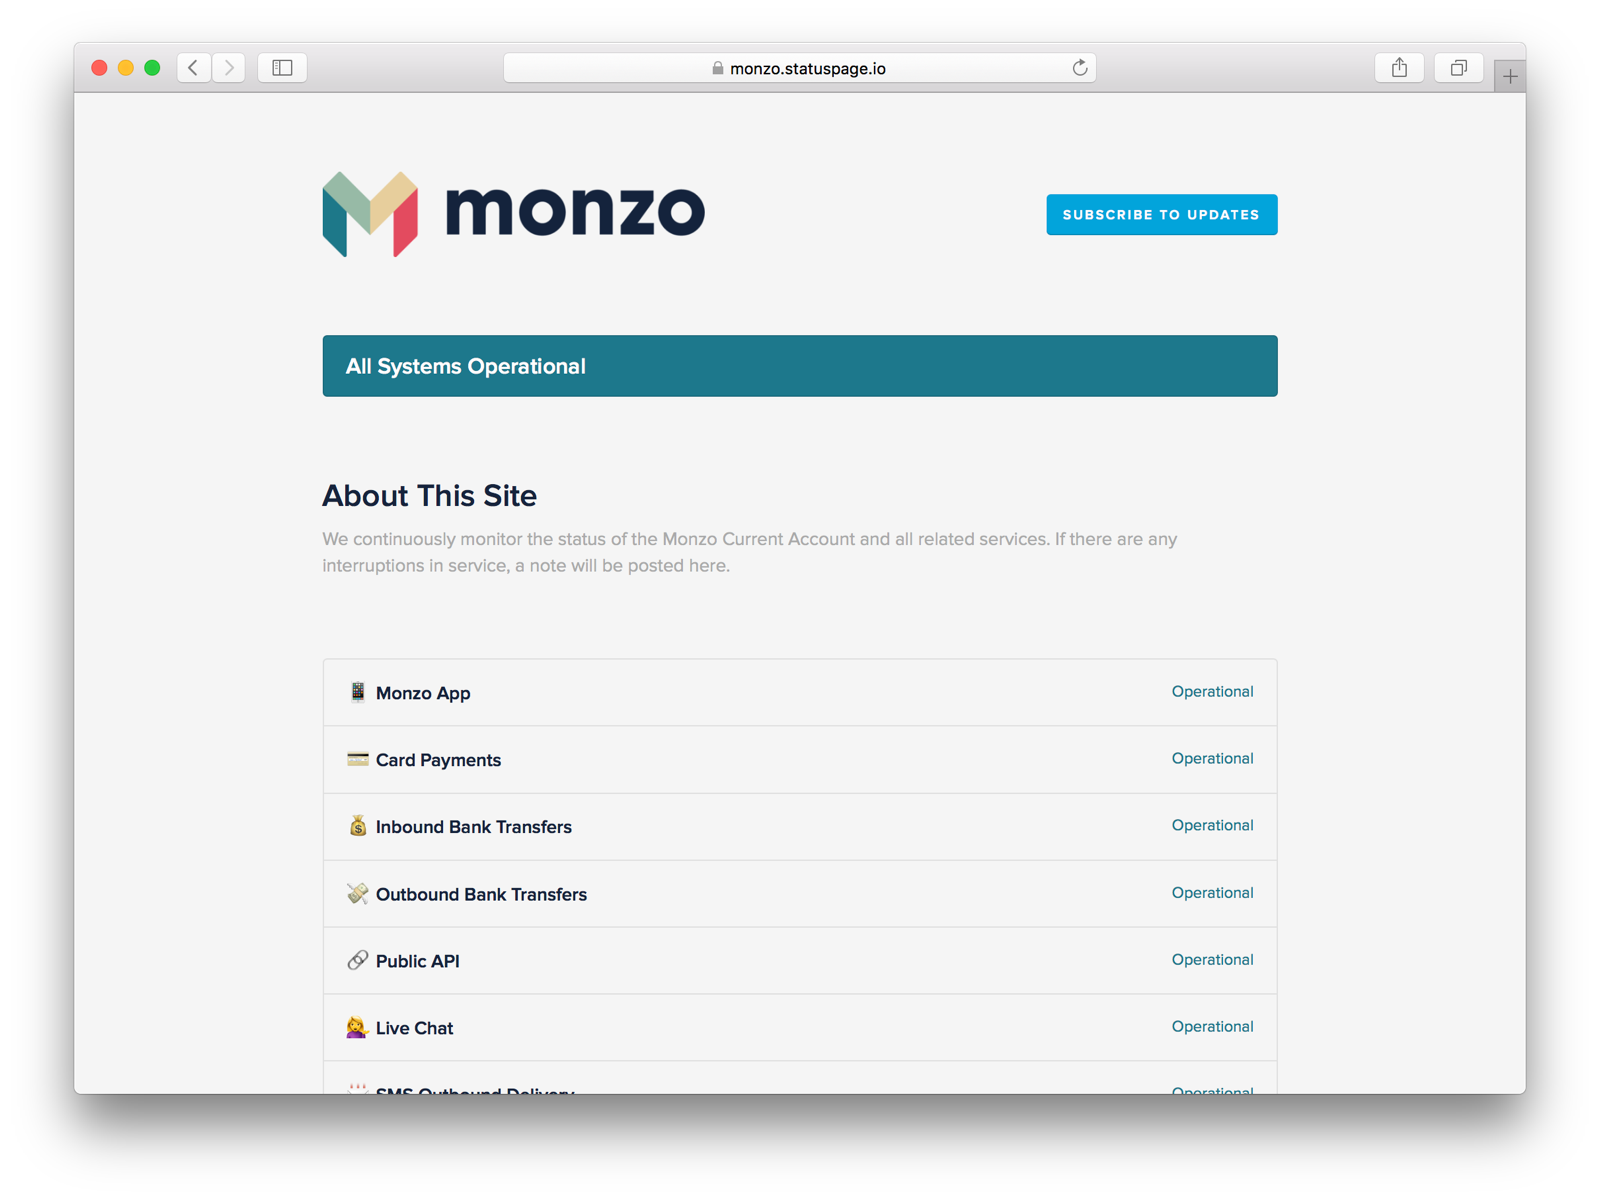 Screenshot of the Monzo public status page